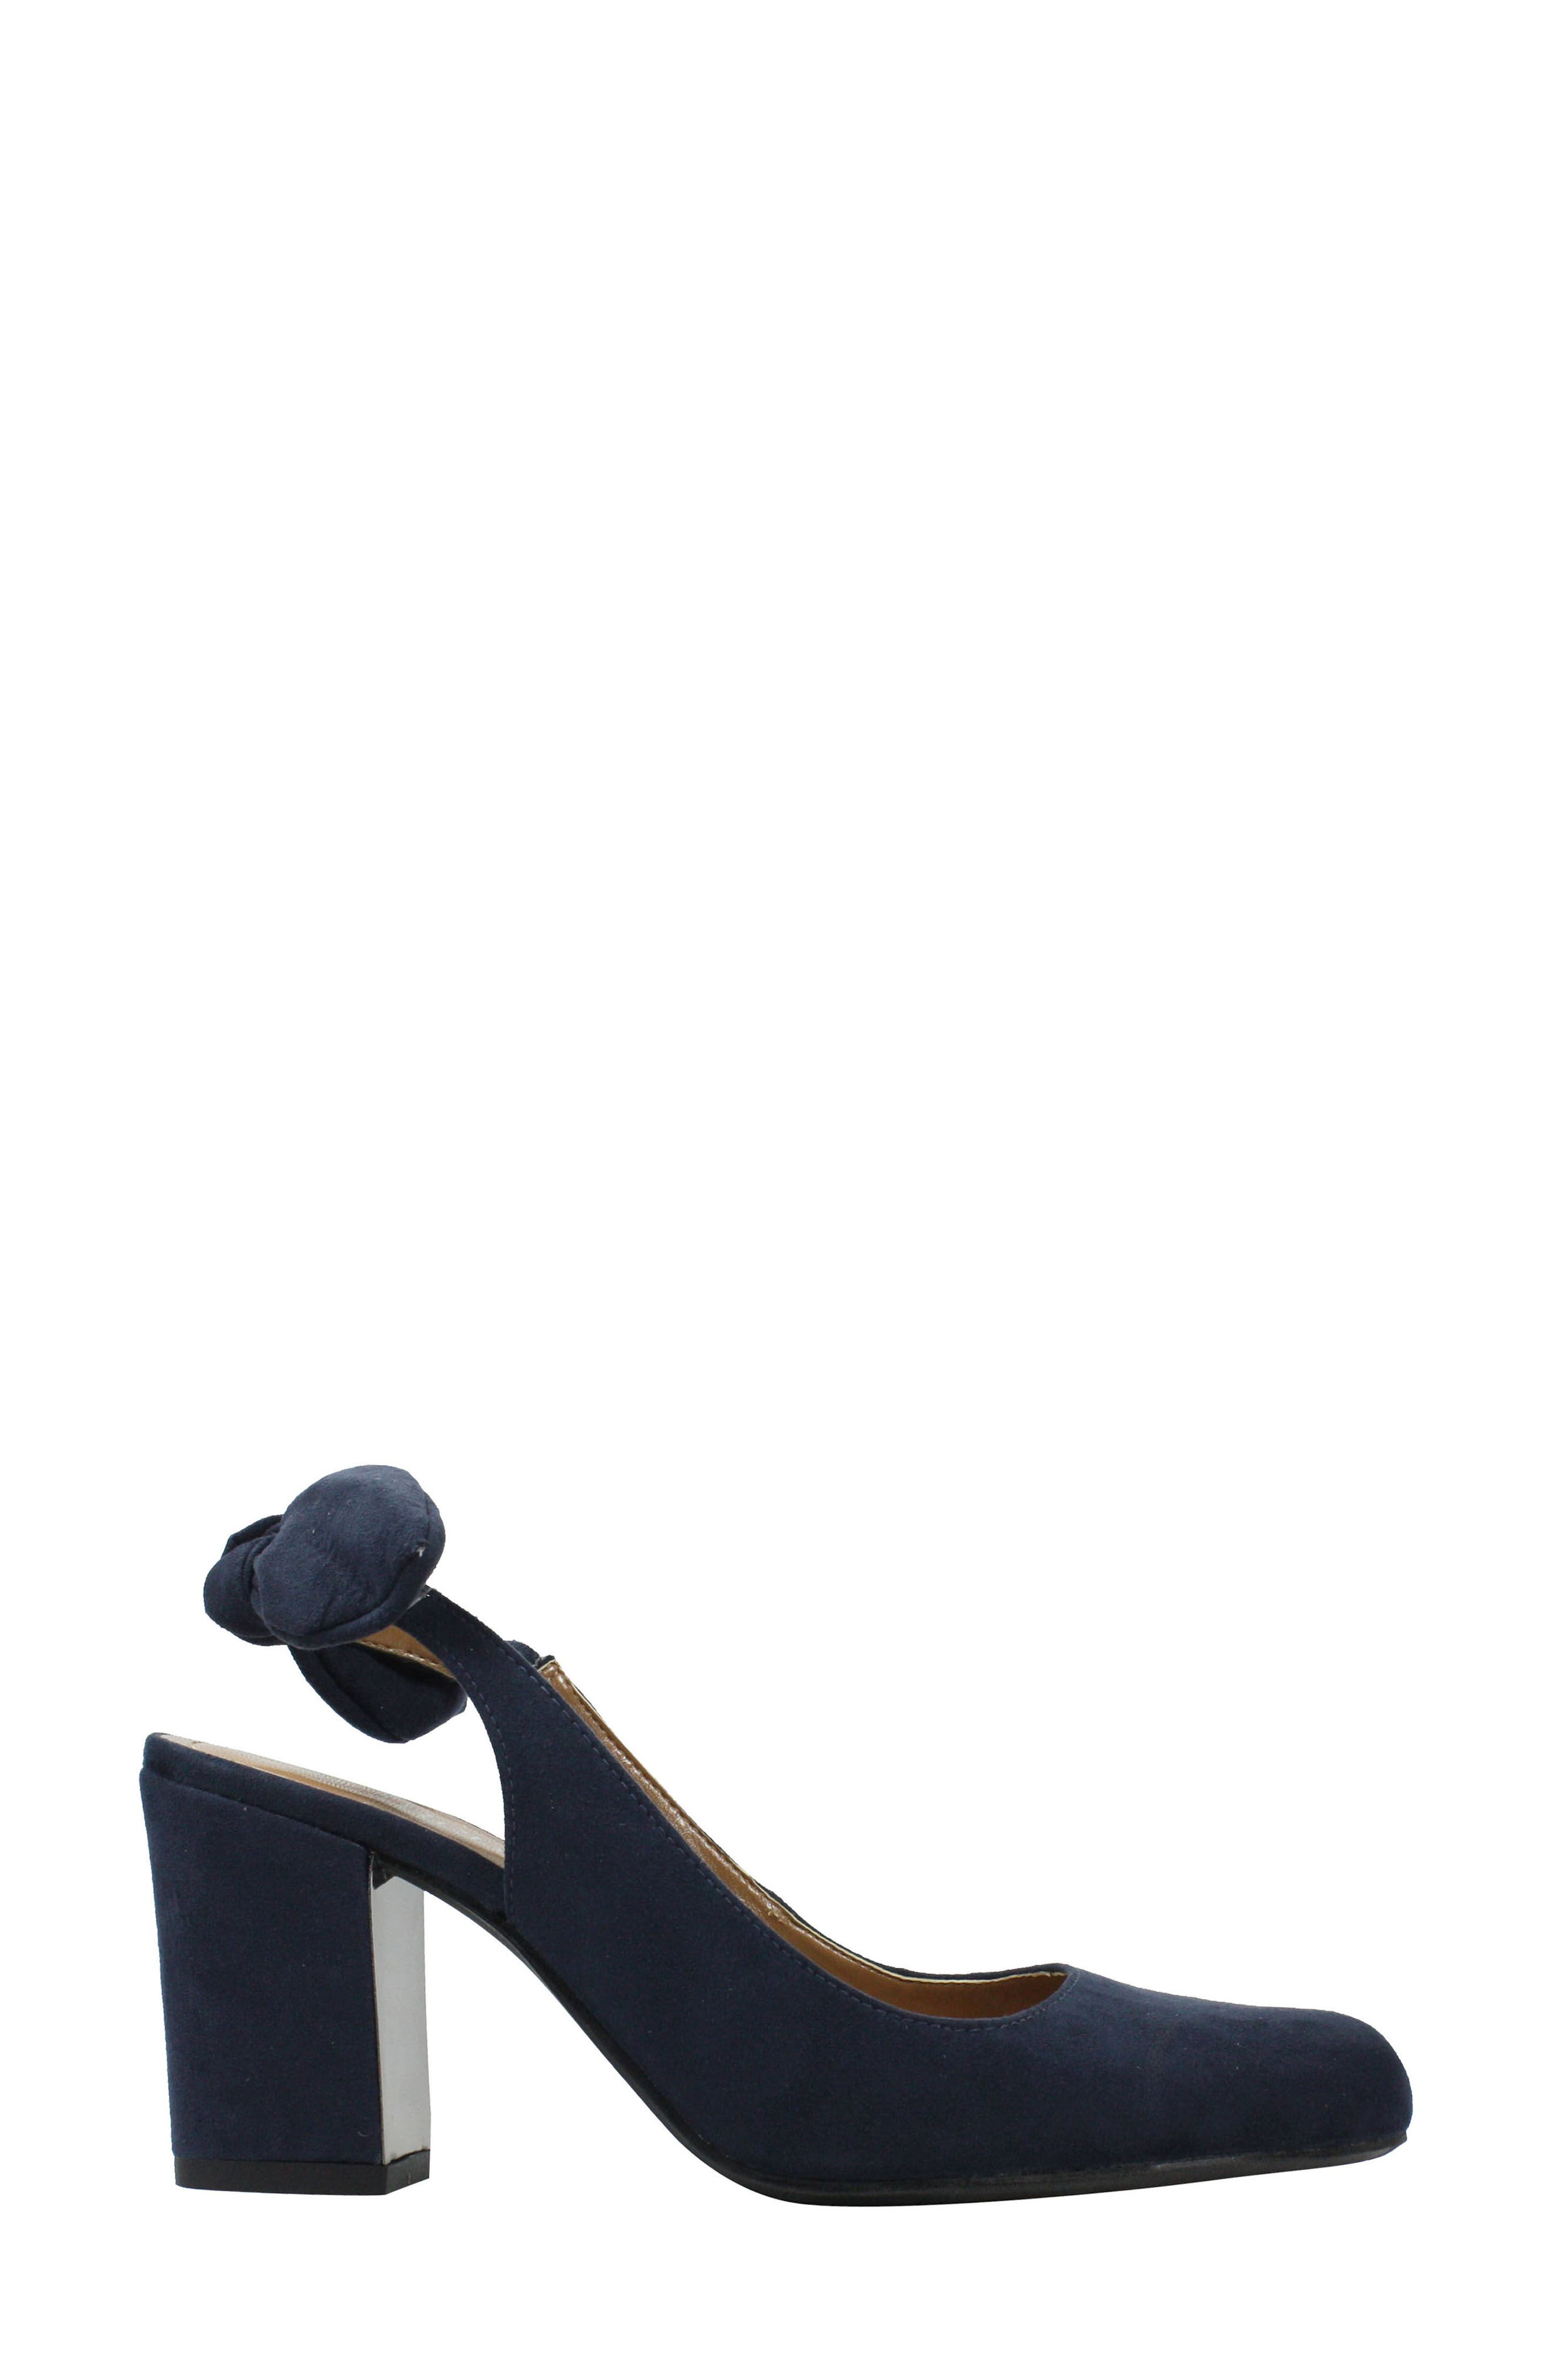 Kennedi Slingback Pump,                             Alternate thumbnail 3, color,                             Navy